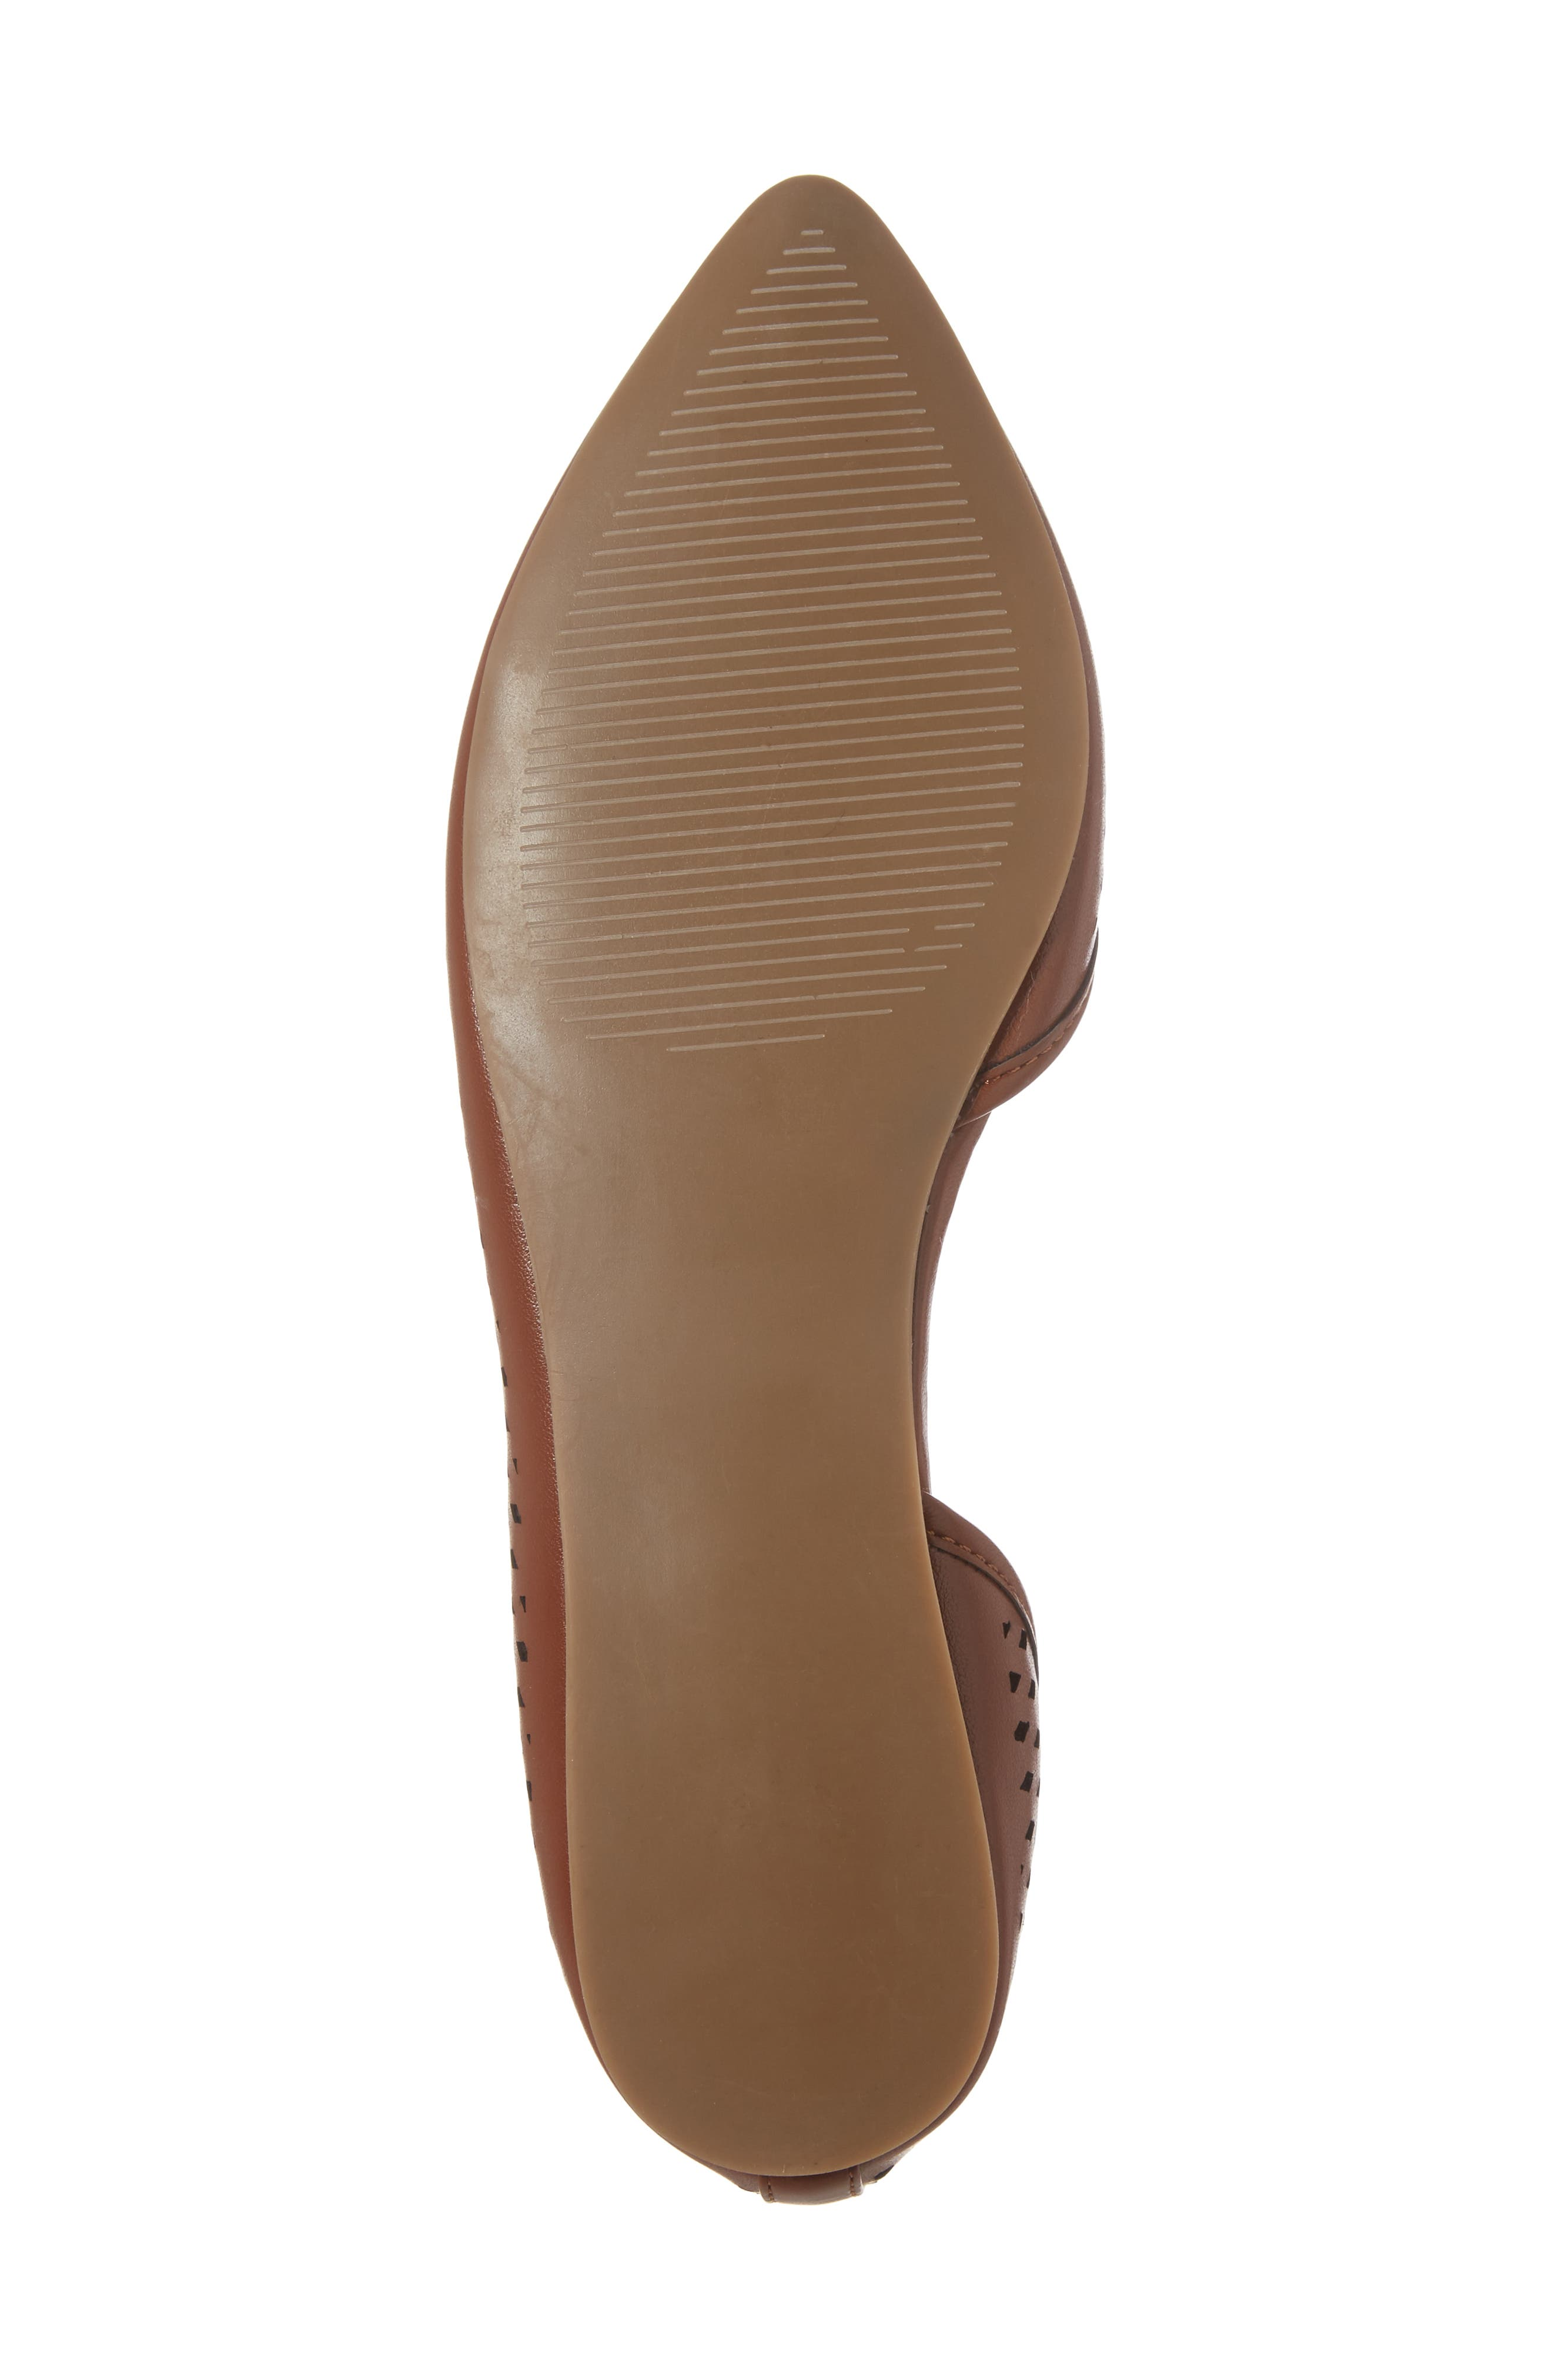 Swiftye Half d'Orsay Flat,                             Alternate thumbnail 6, color,                             Tan Synthetic Leather